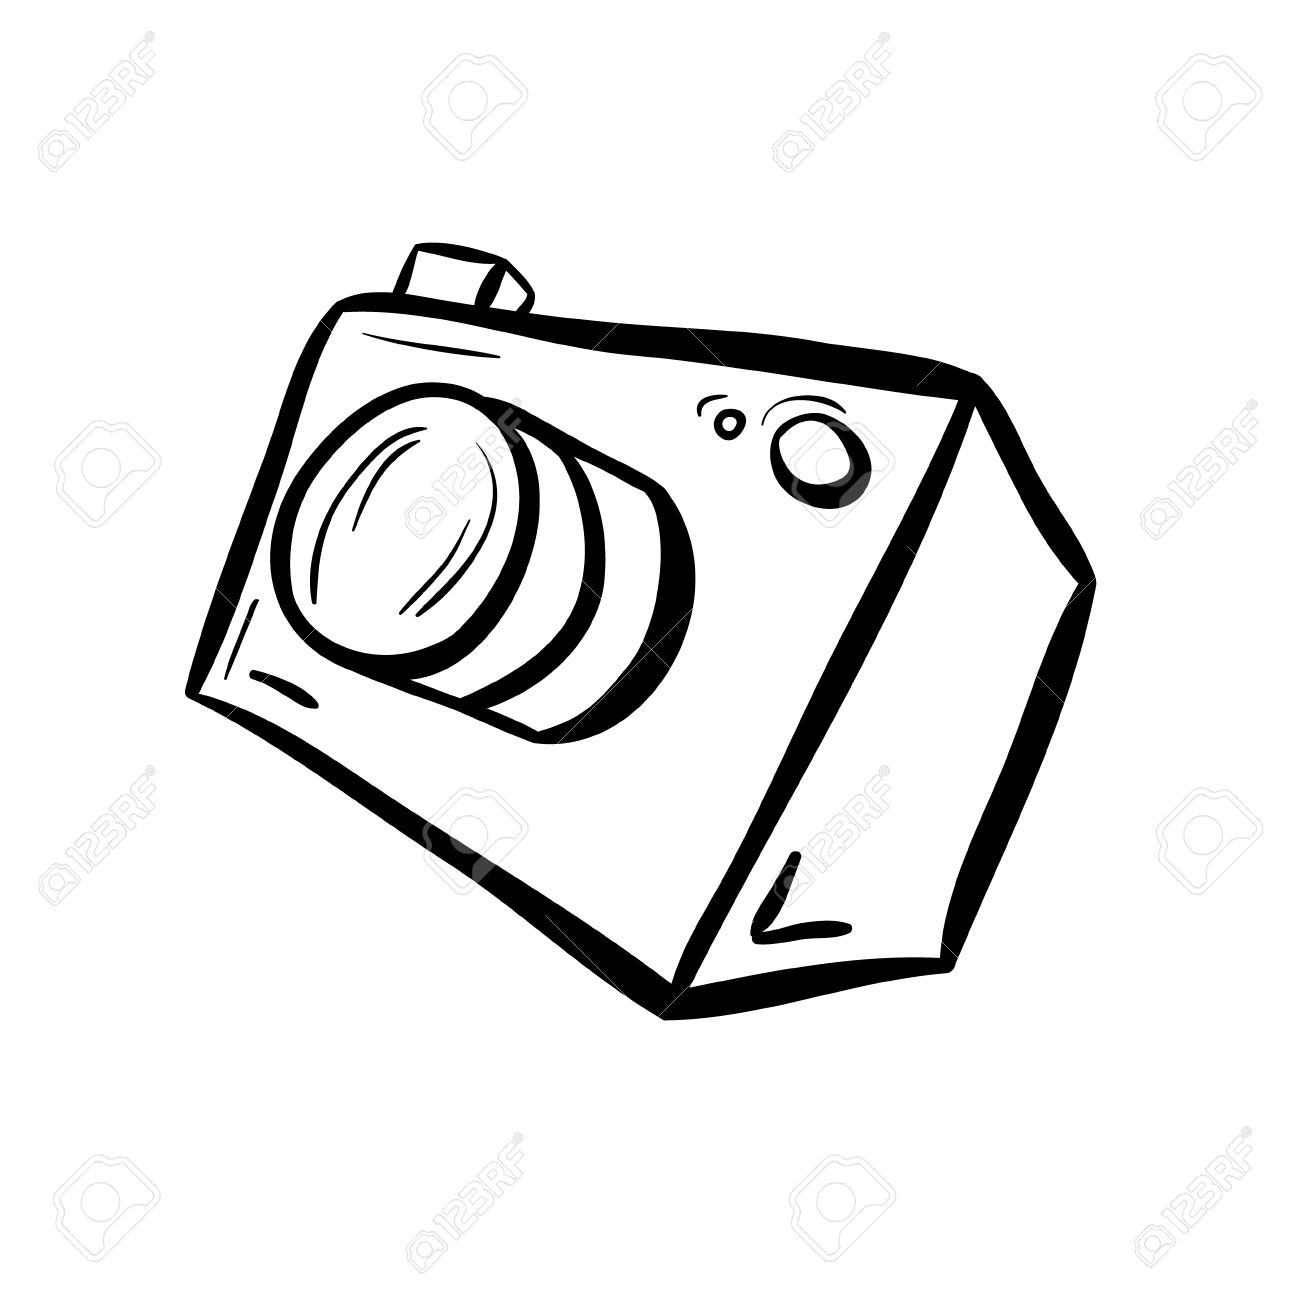 1300x1300 Illustration Of A Camera. Take A Photo, Take A Picture. Simple